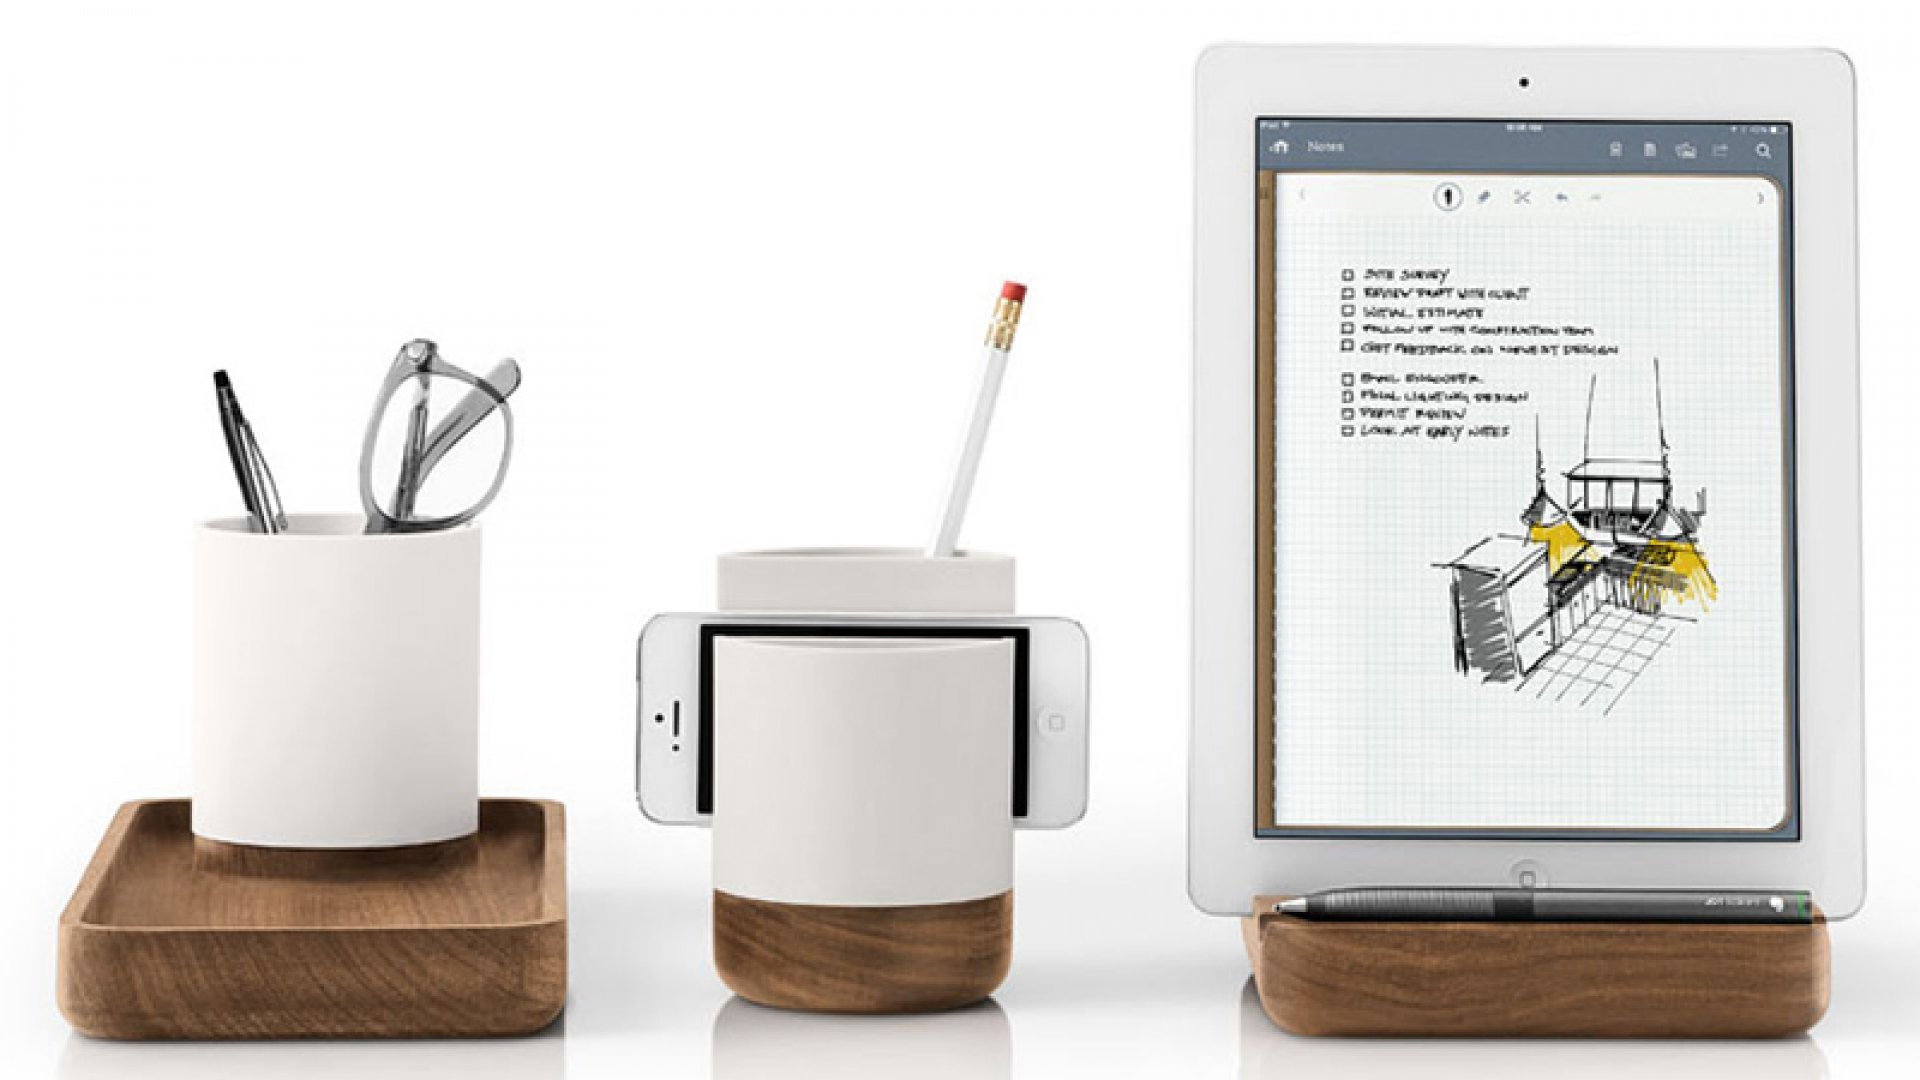 7 Office Gadgets to Inspire and Motivate You